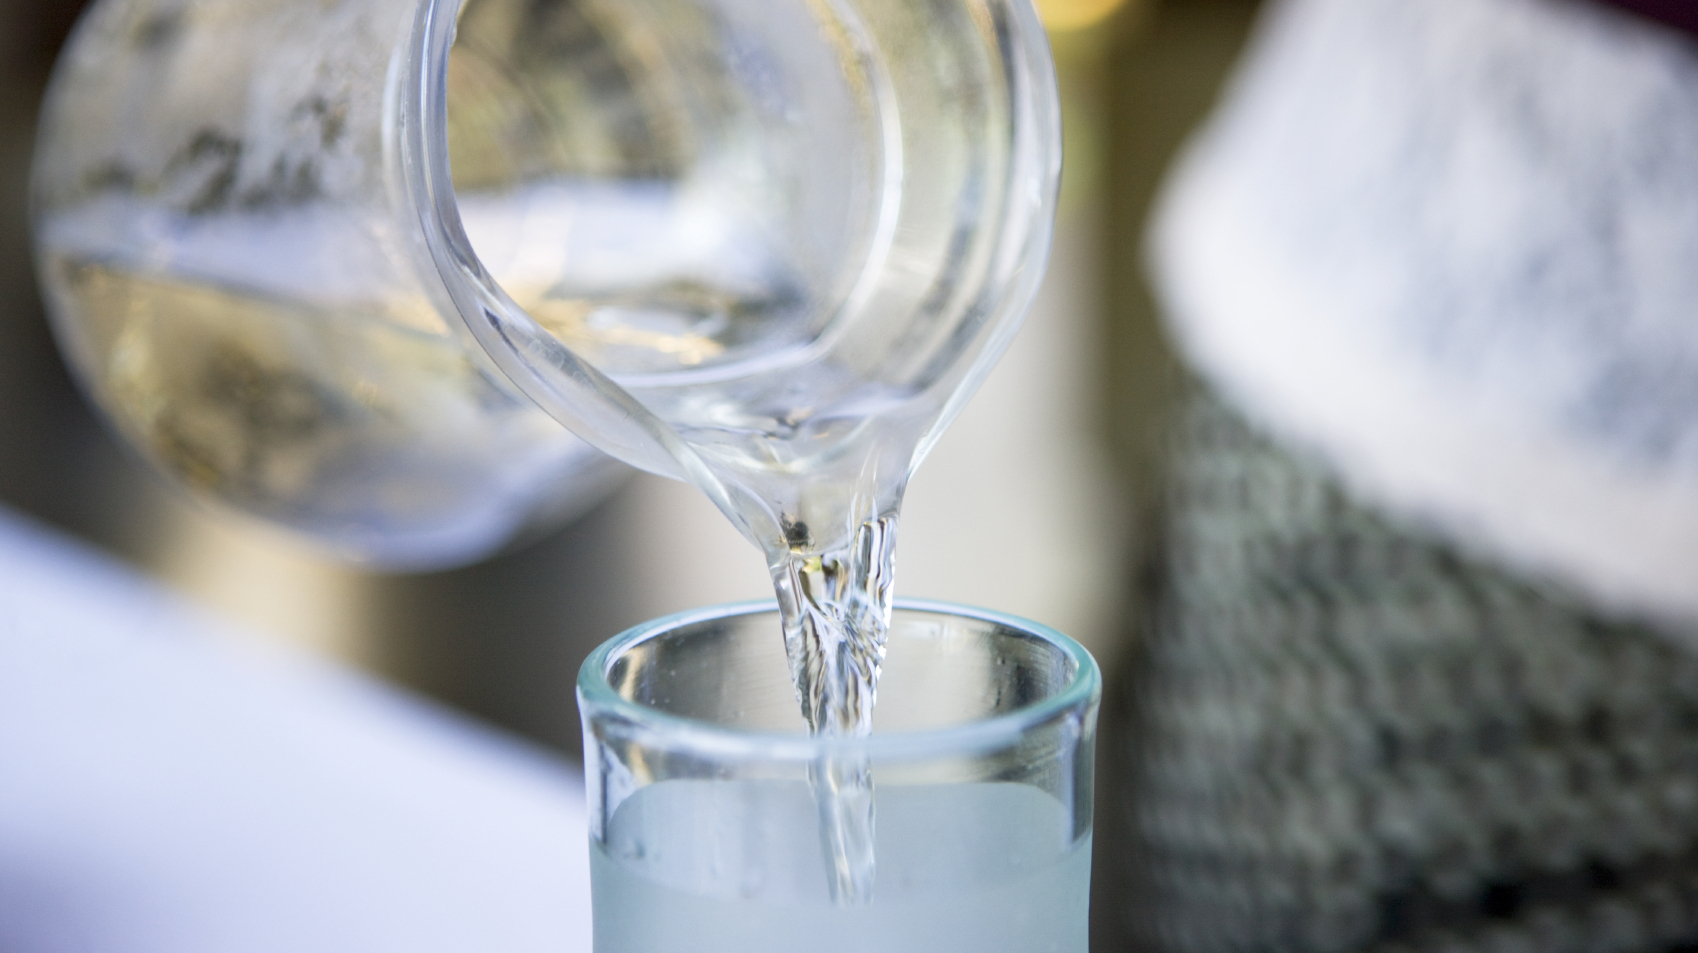 How correctly to pour cold water